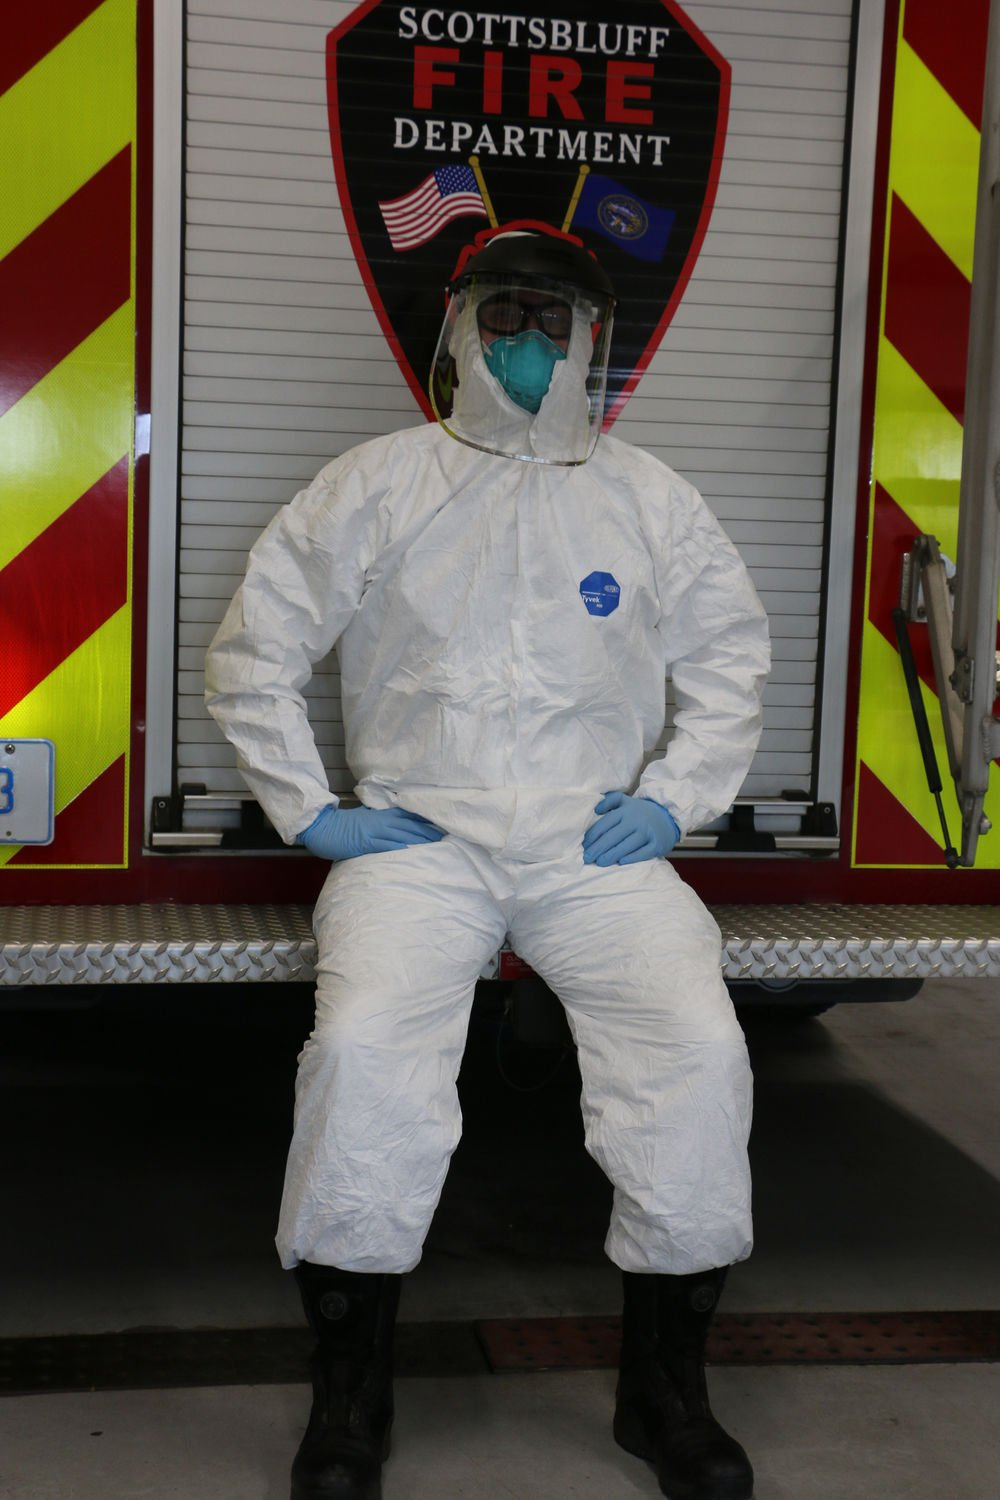 First responders among those needing personal protective equipment during pandemic